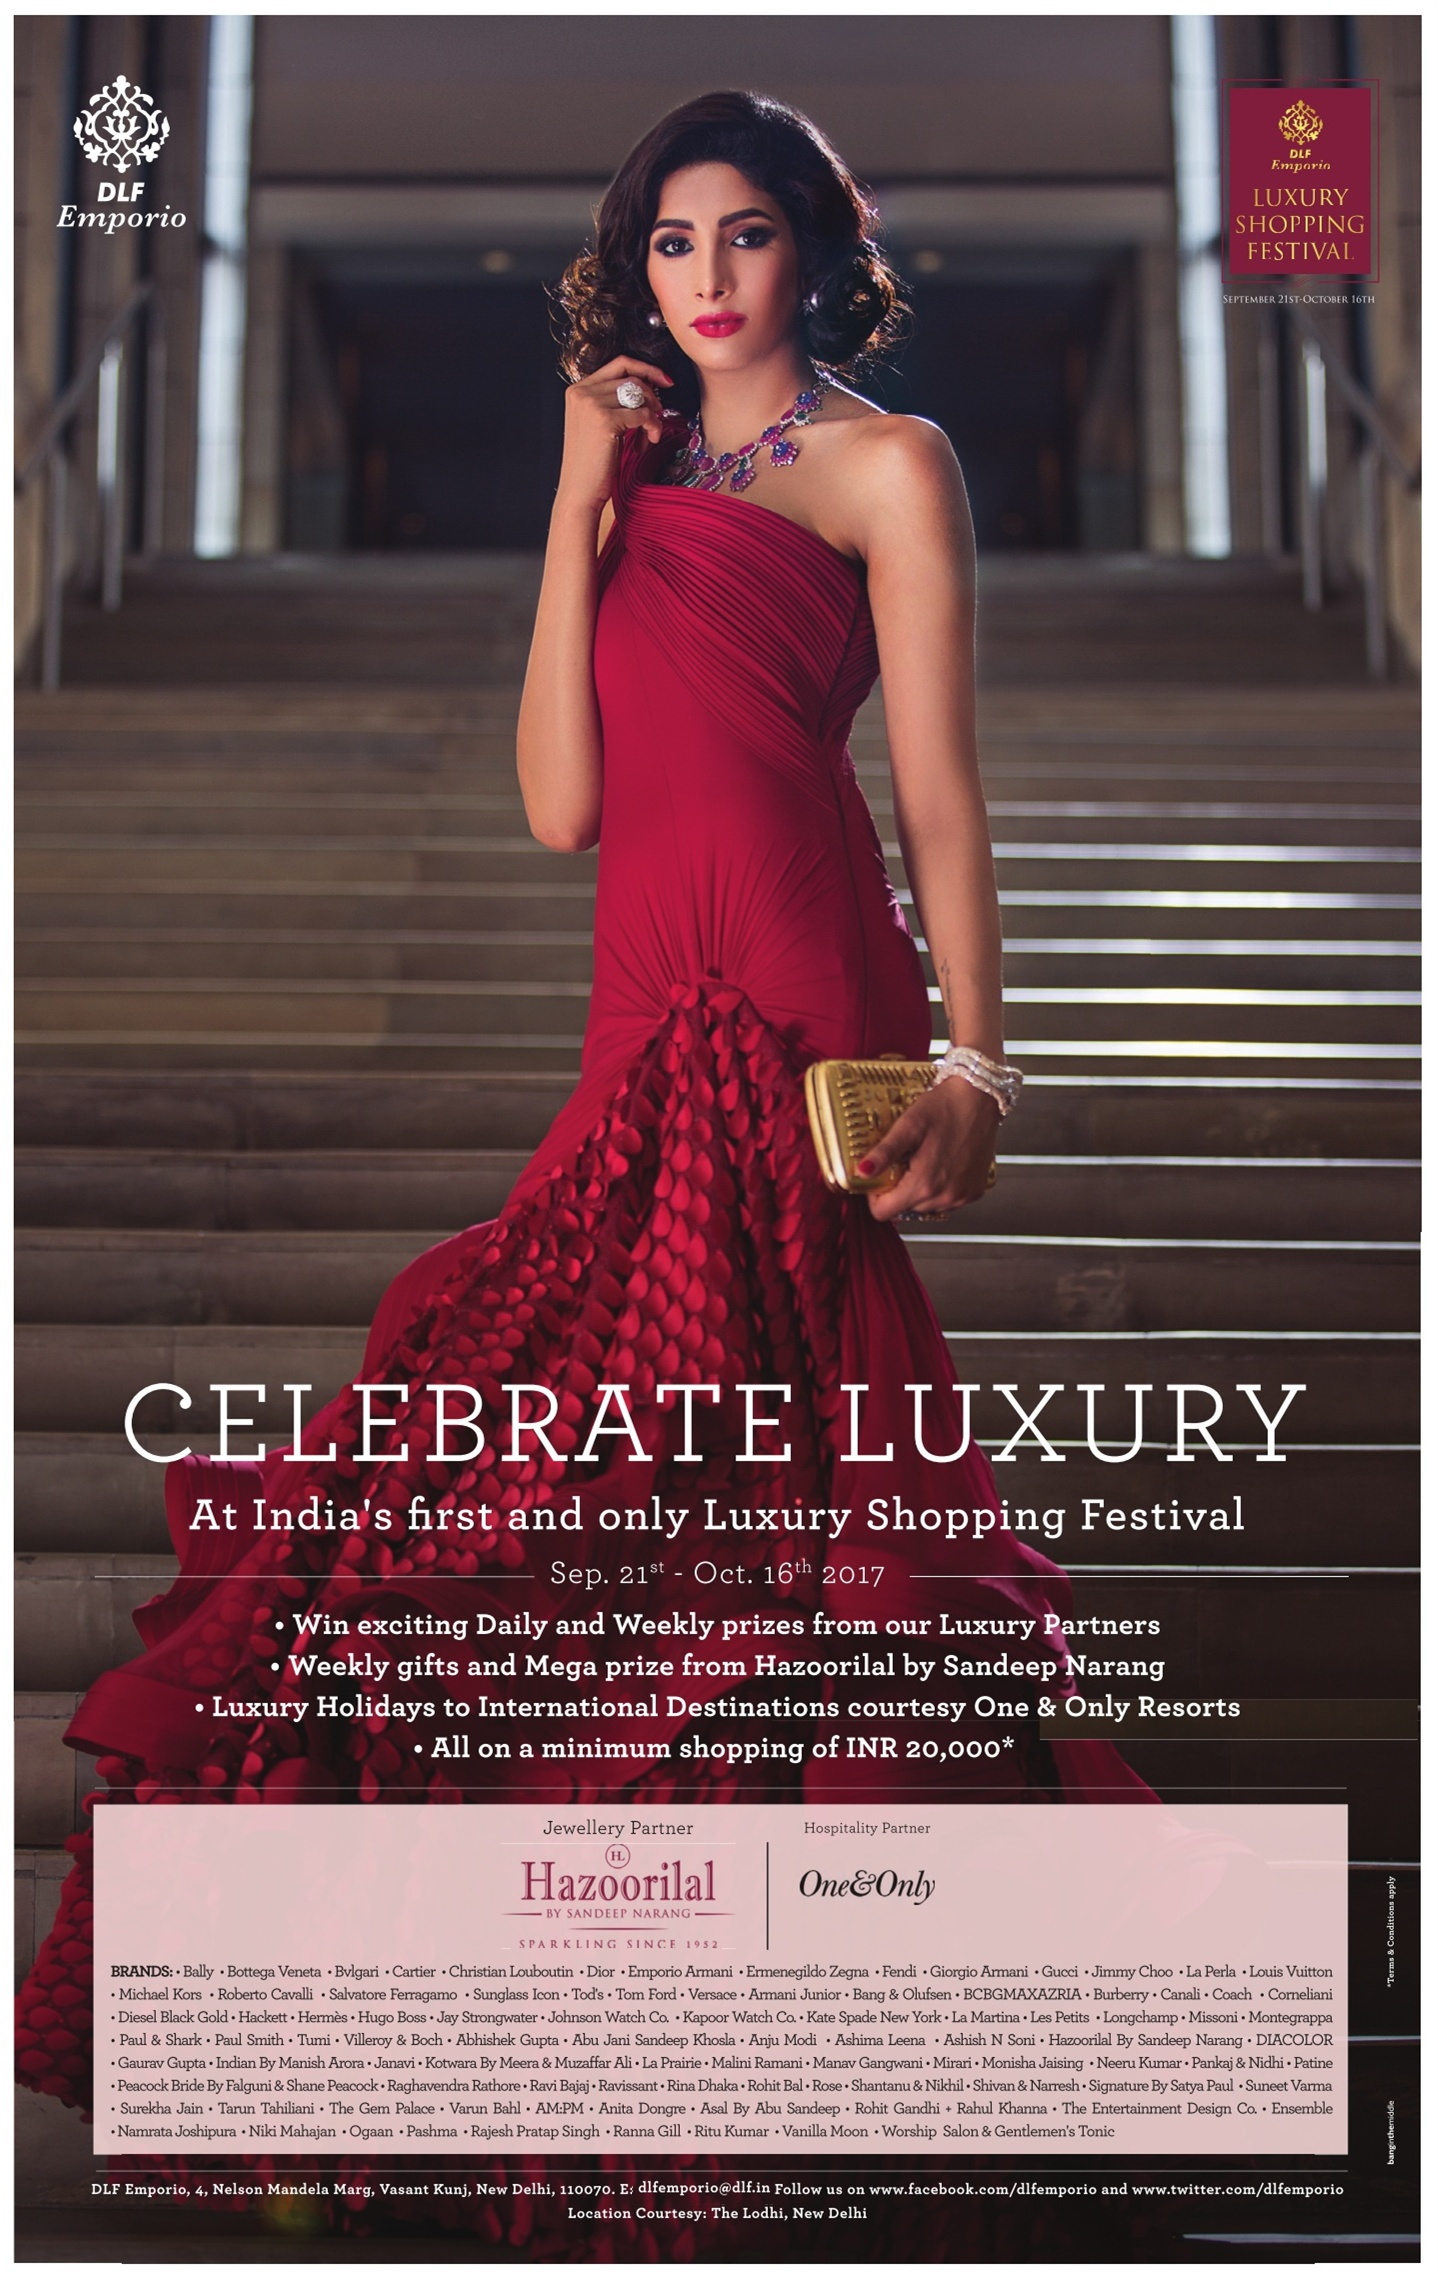 Dlf Emporio Luxury Shopping Festival Celebrate Luxury At Indias First And Only Luxury Shopping Festival Ad